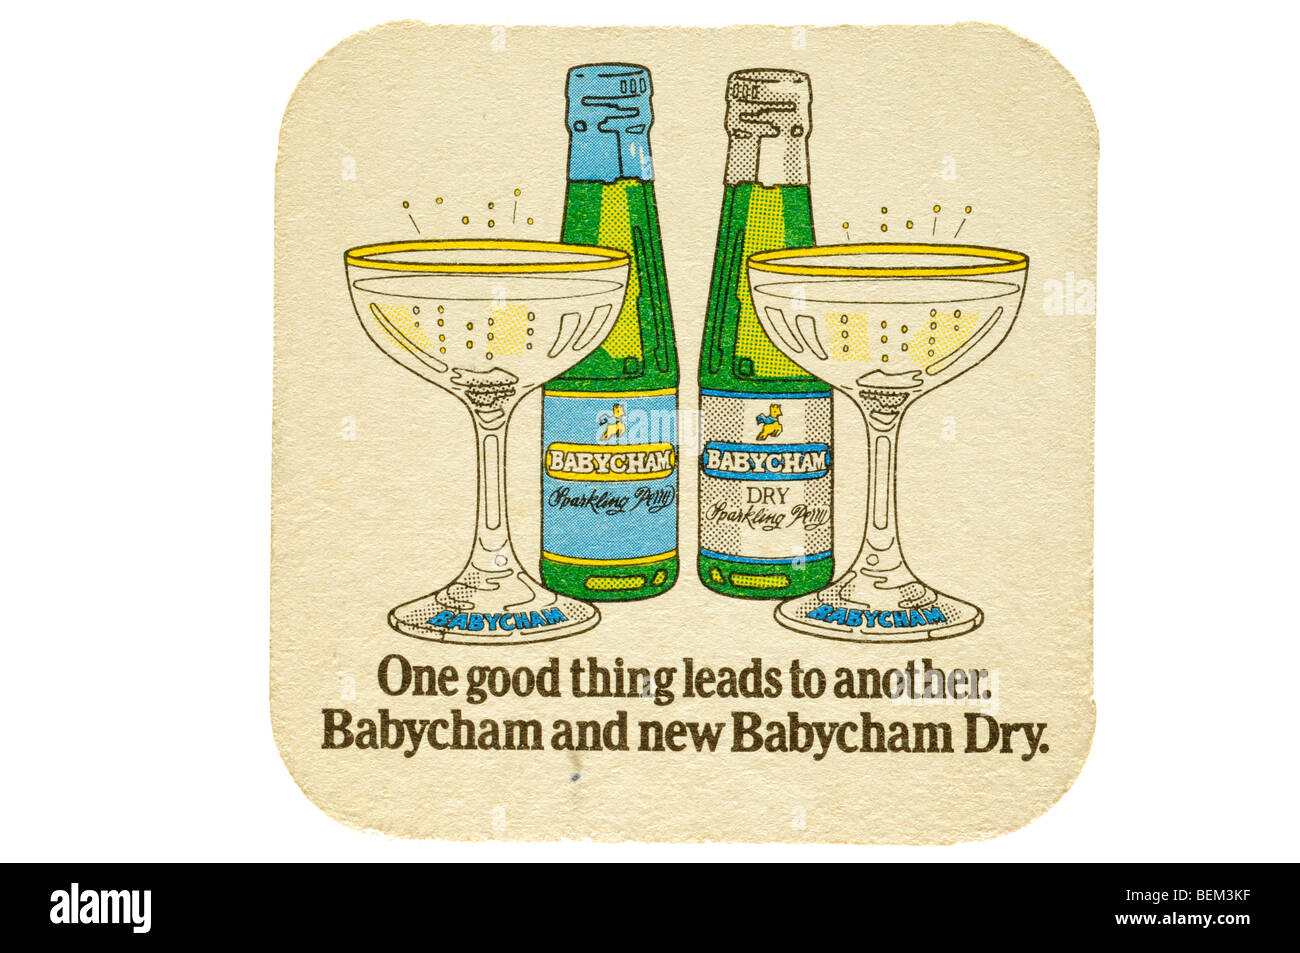 one good thing leads to another babycham and new babycham dry - Stock Image